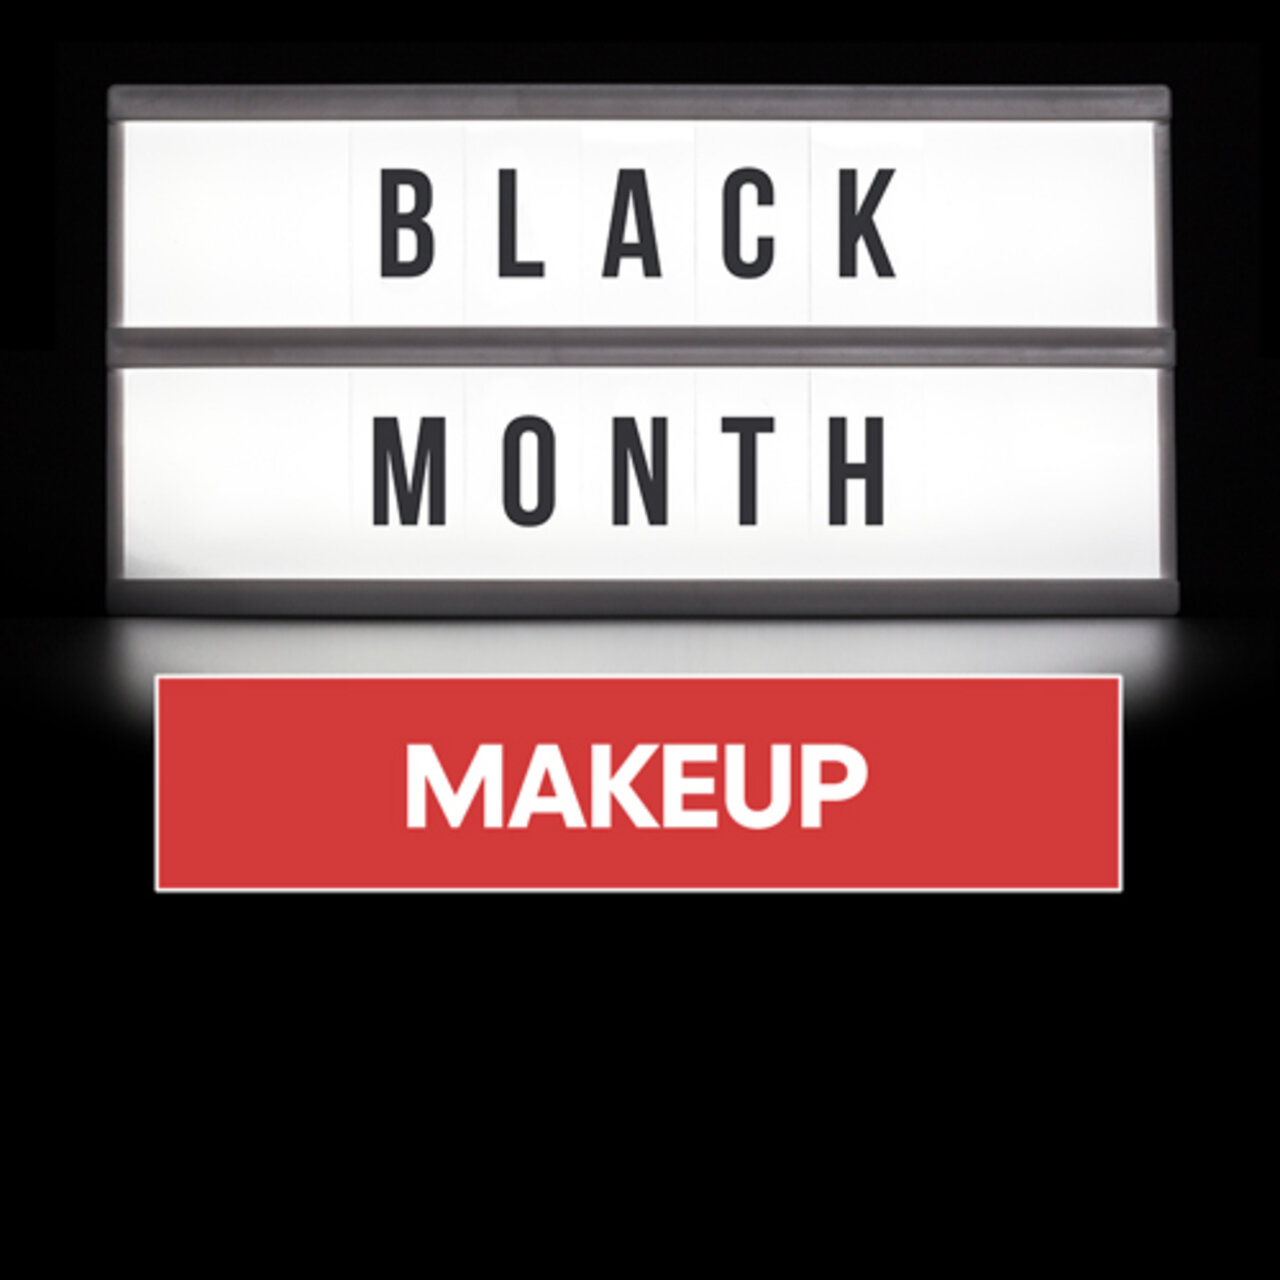 /makeup?f_Other=Black%20Month